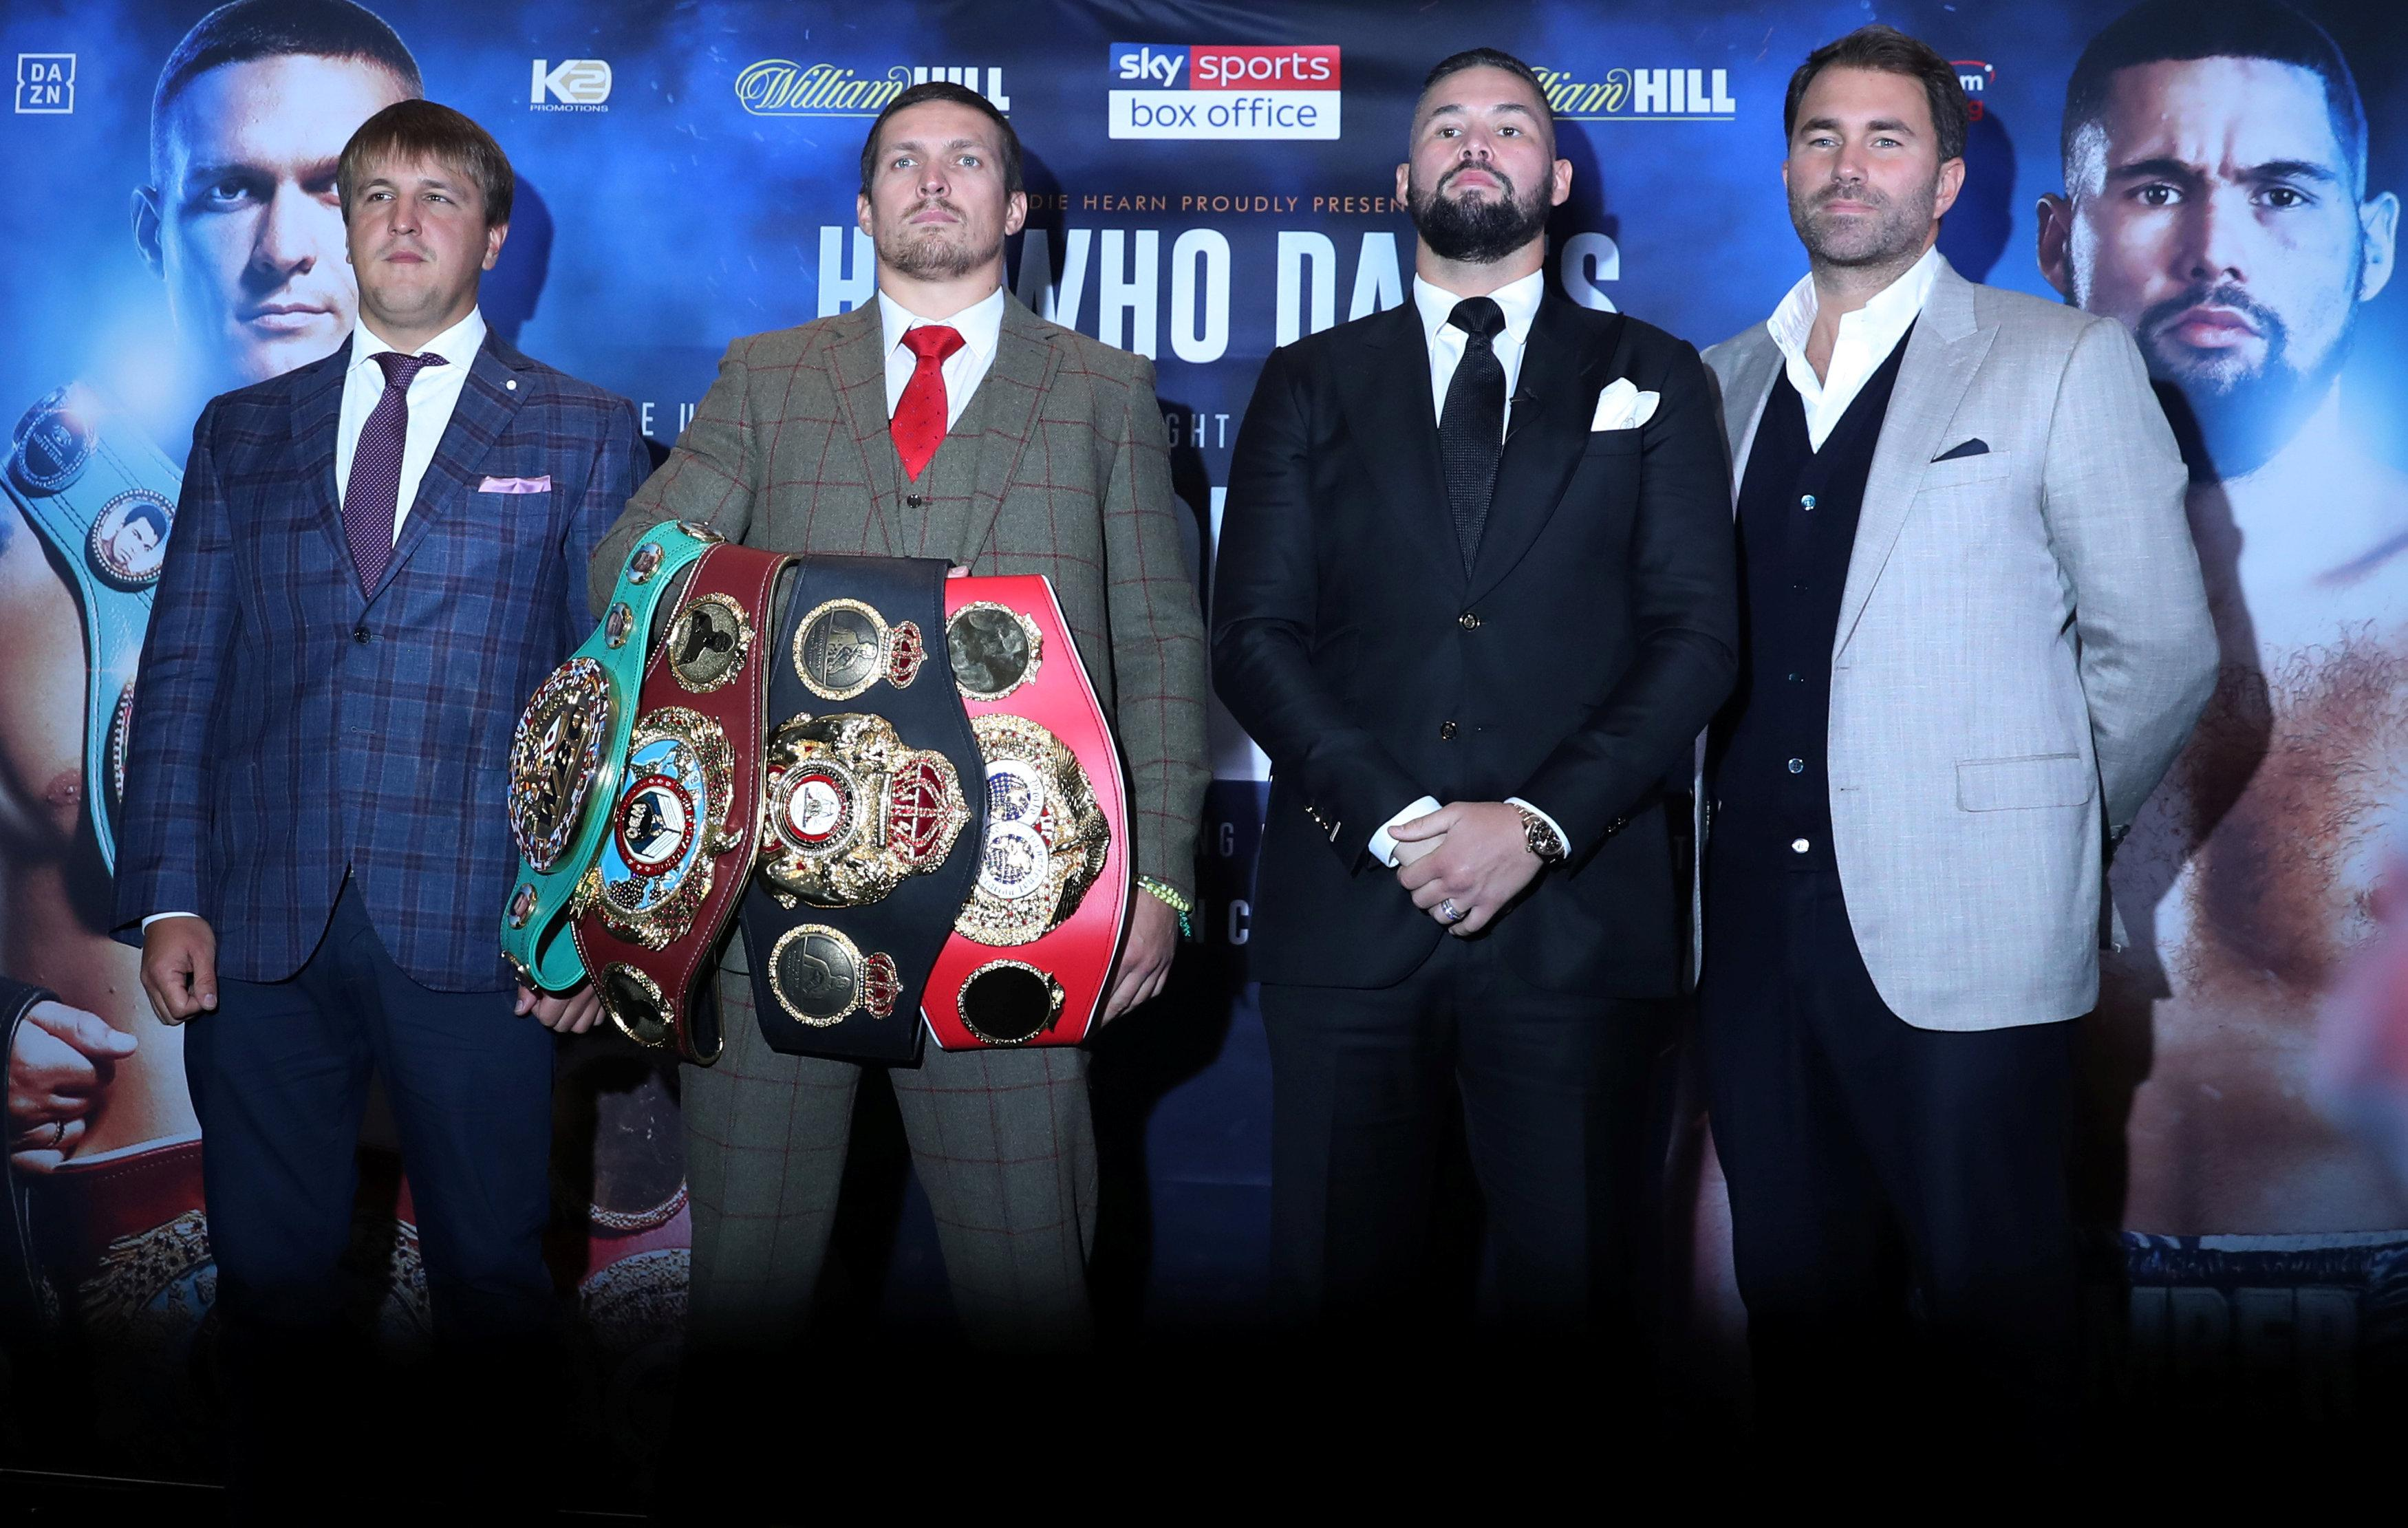 Tony Bellew will fight Oleksandr Usyk this Saturday in his final boxing bout